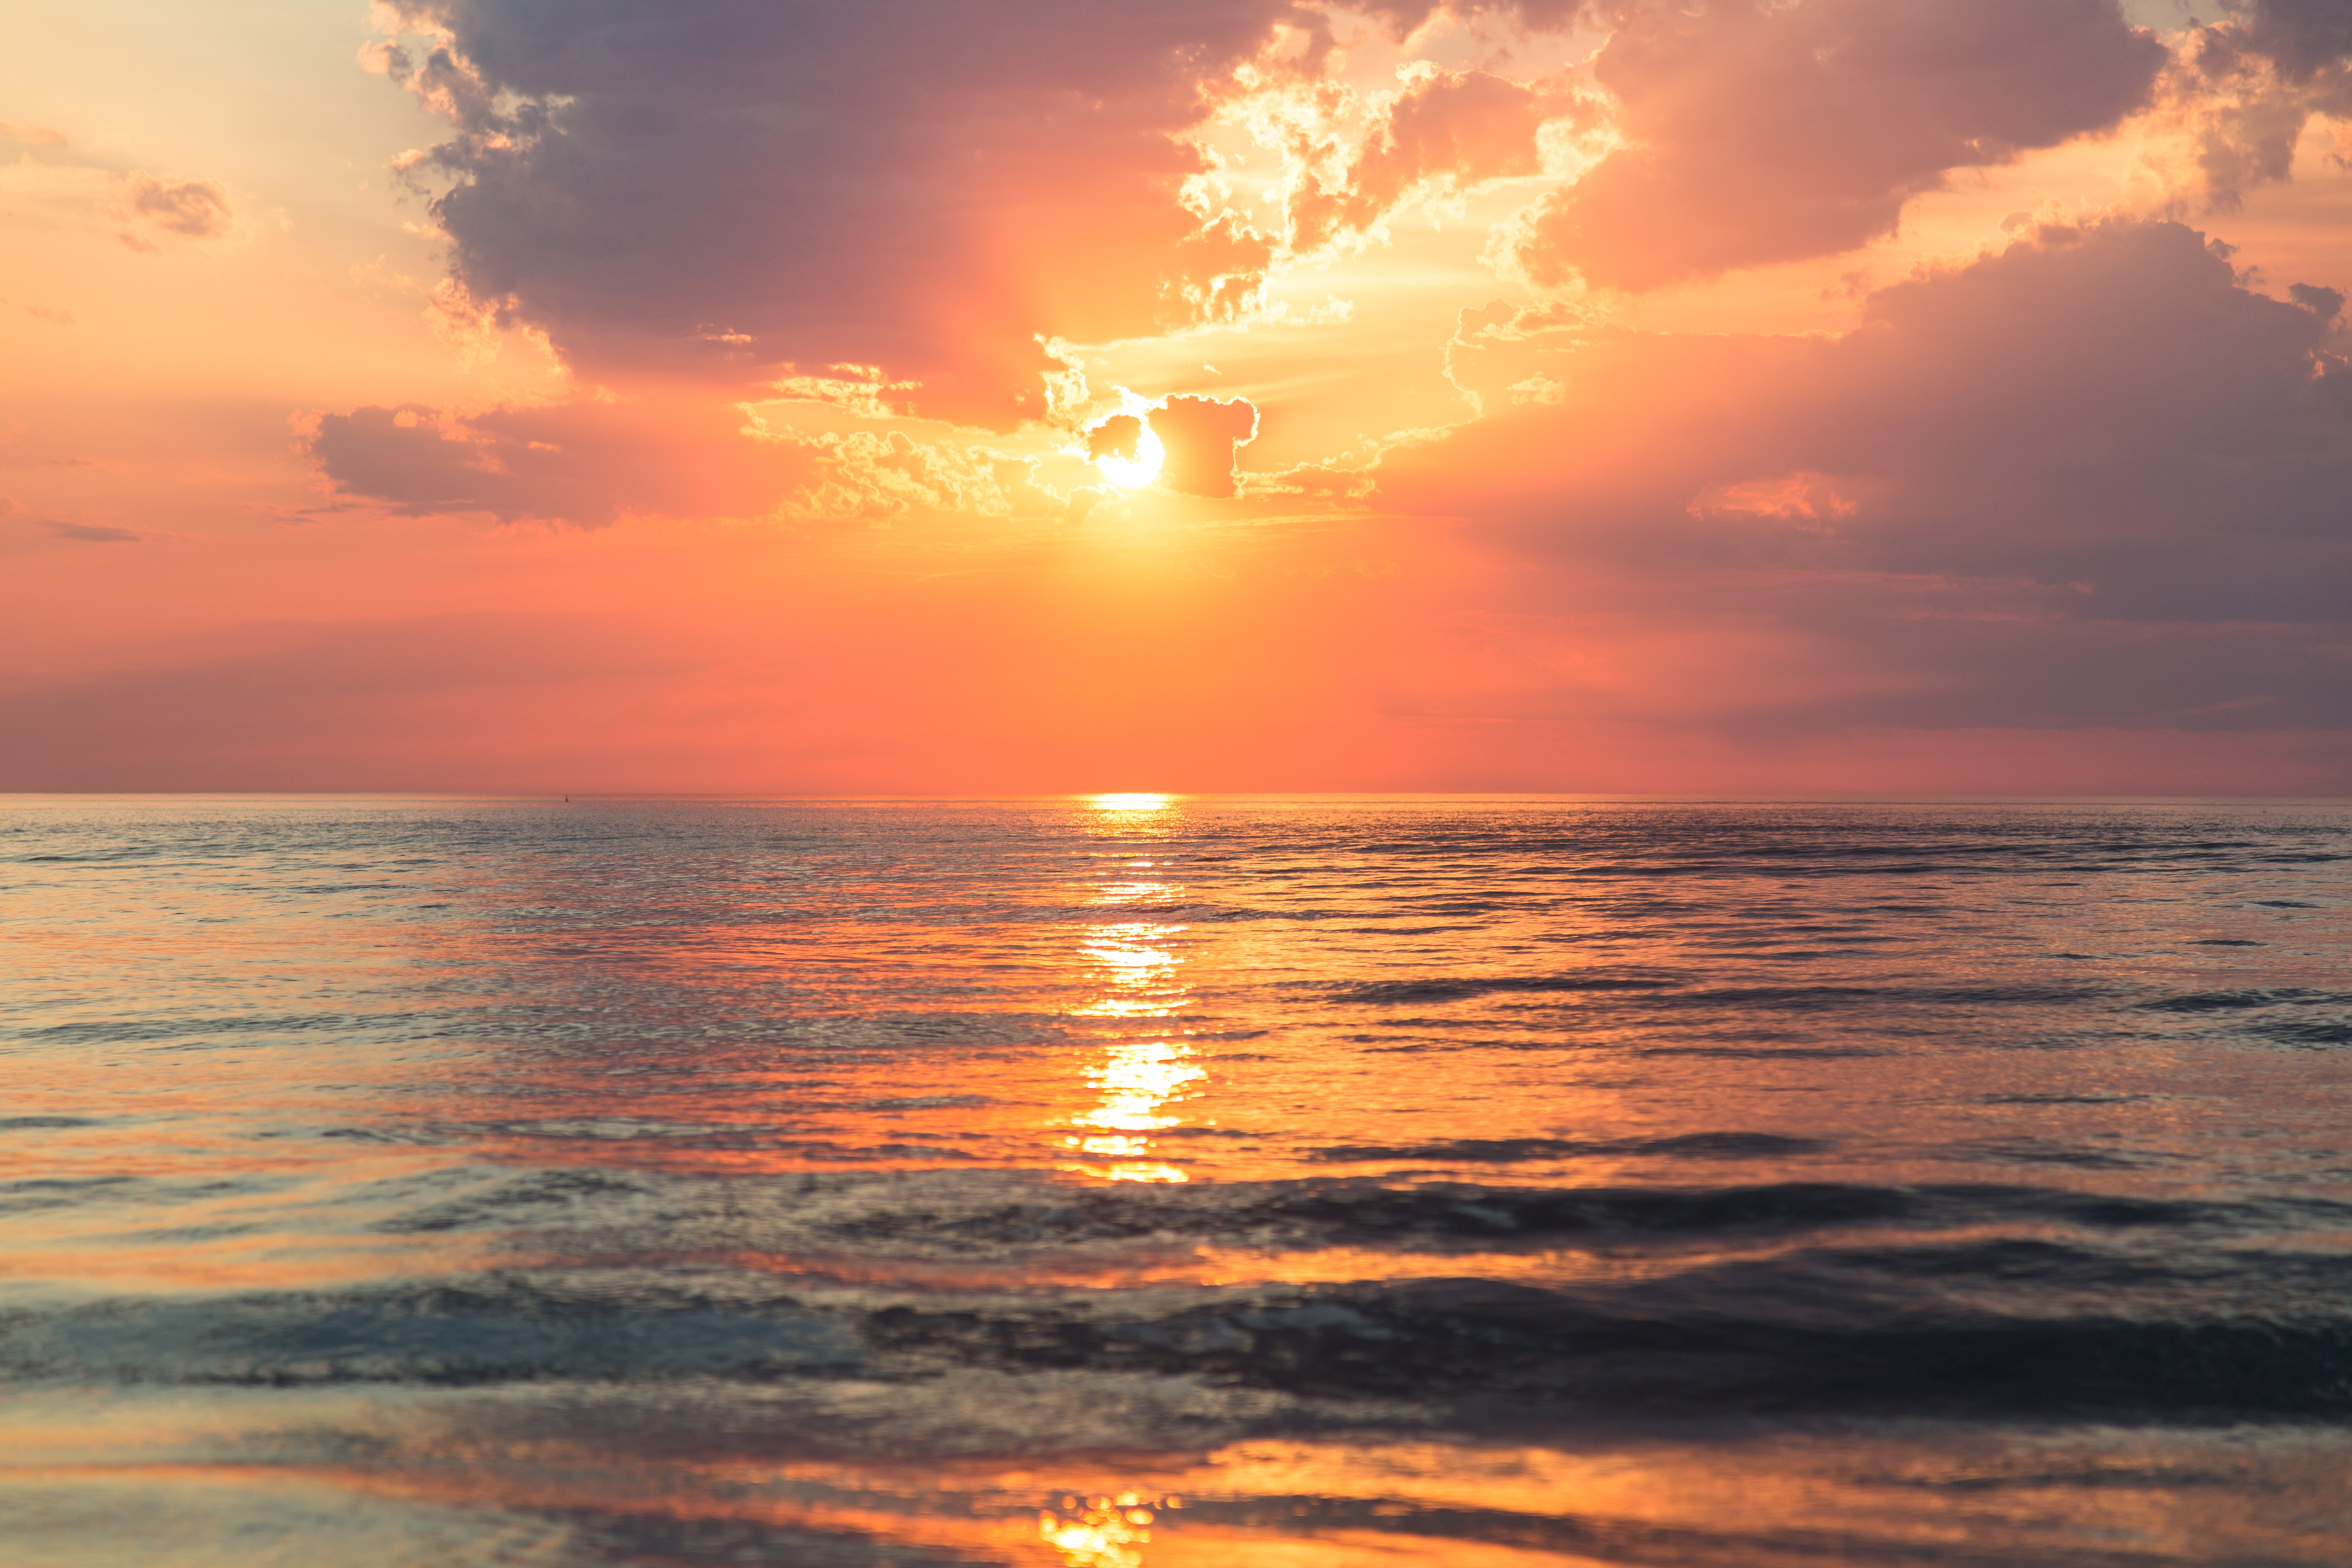 A beautiful sunset in a cloudy sky, casted above a calm ocean.